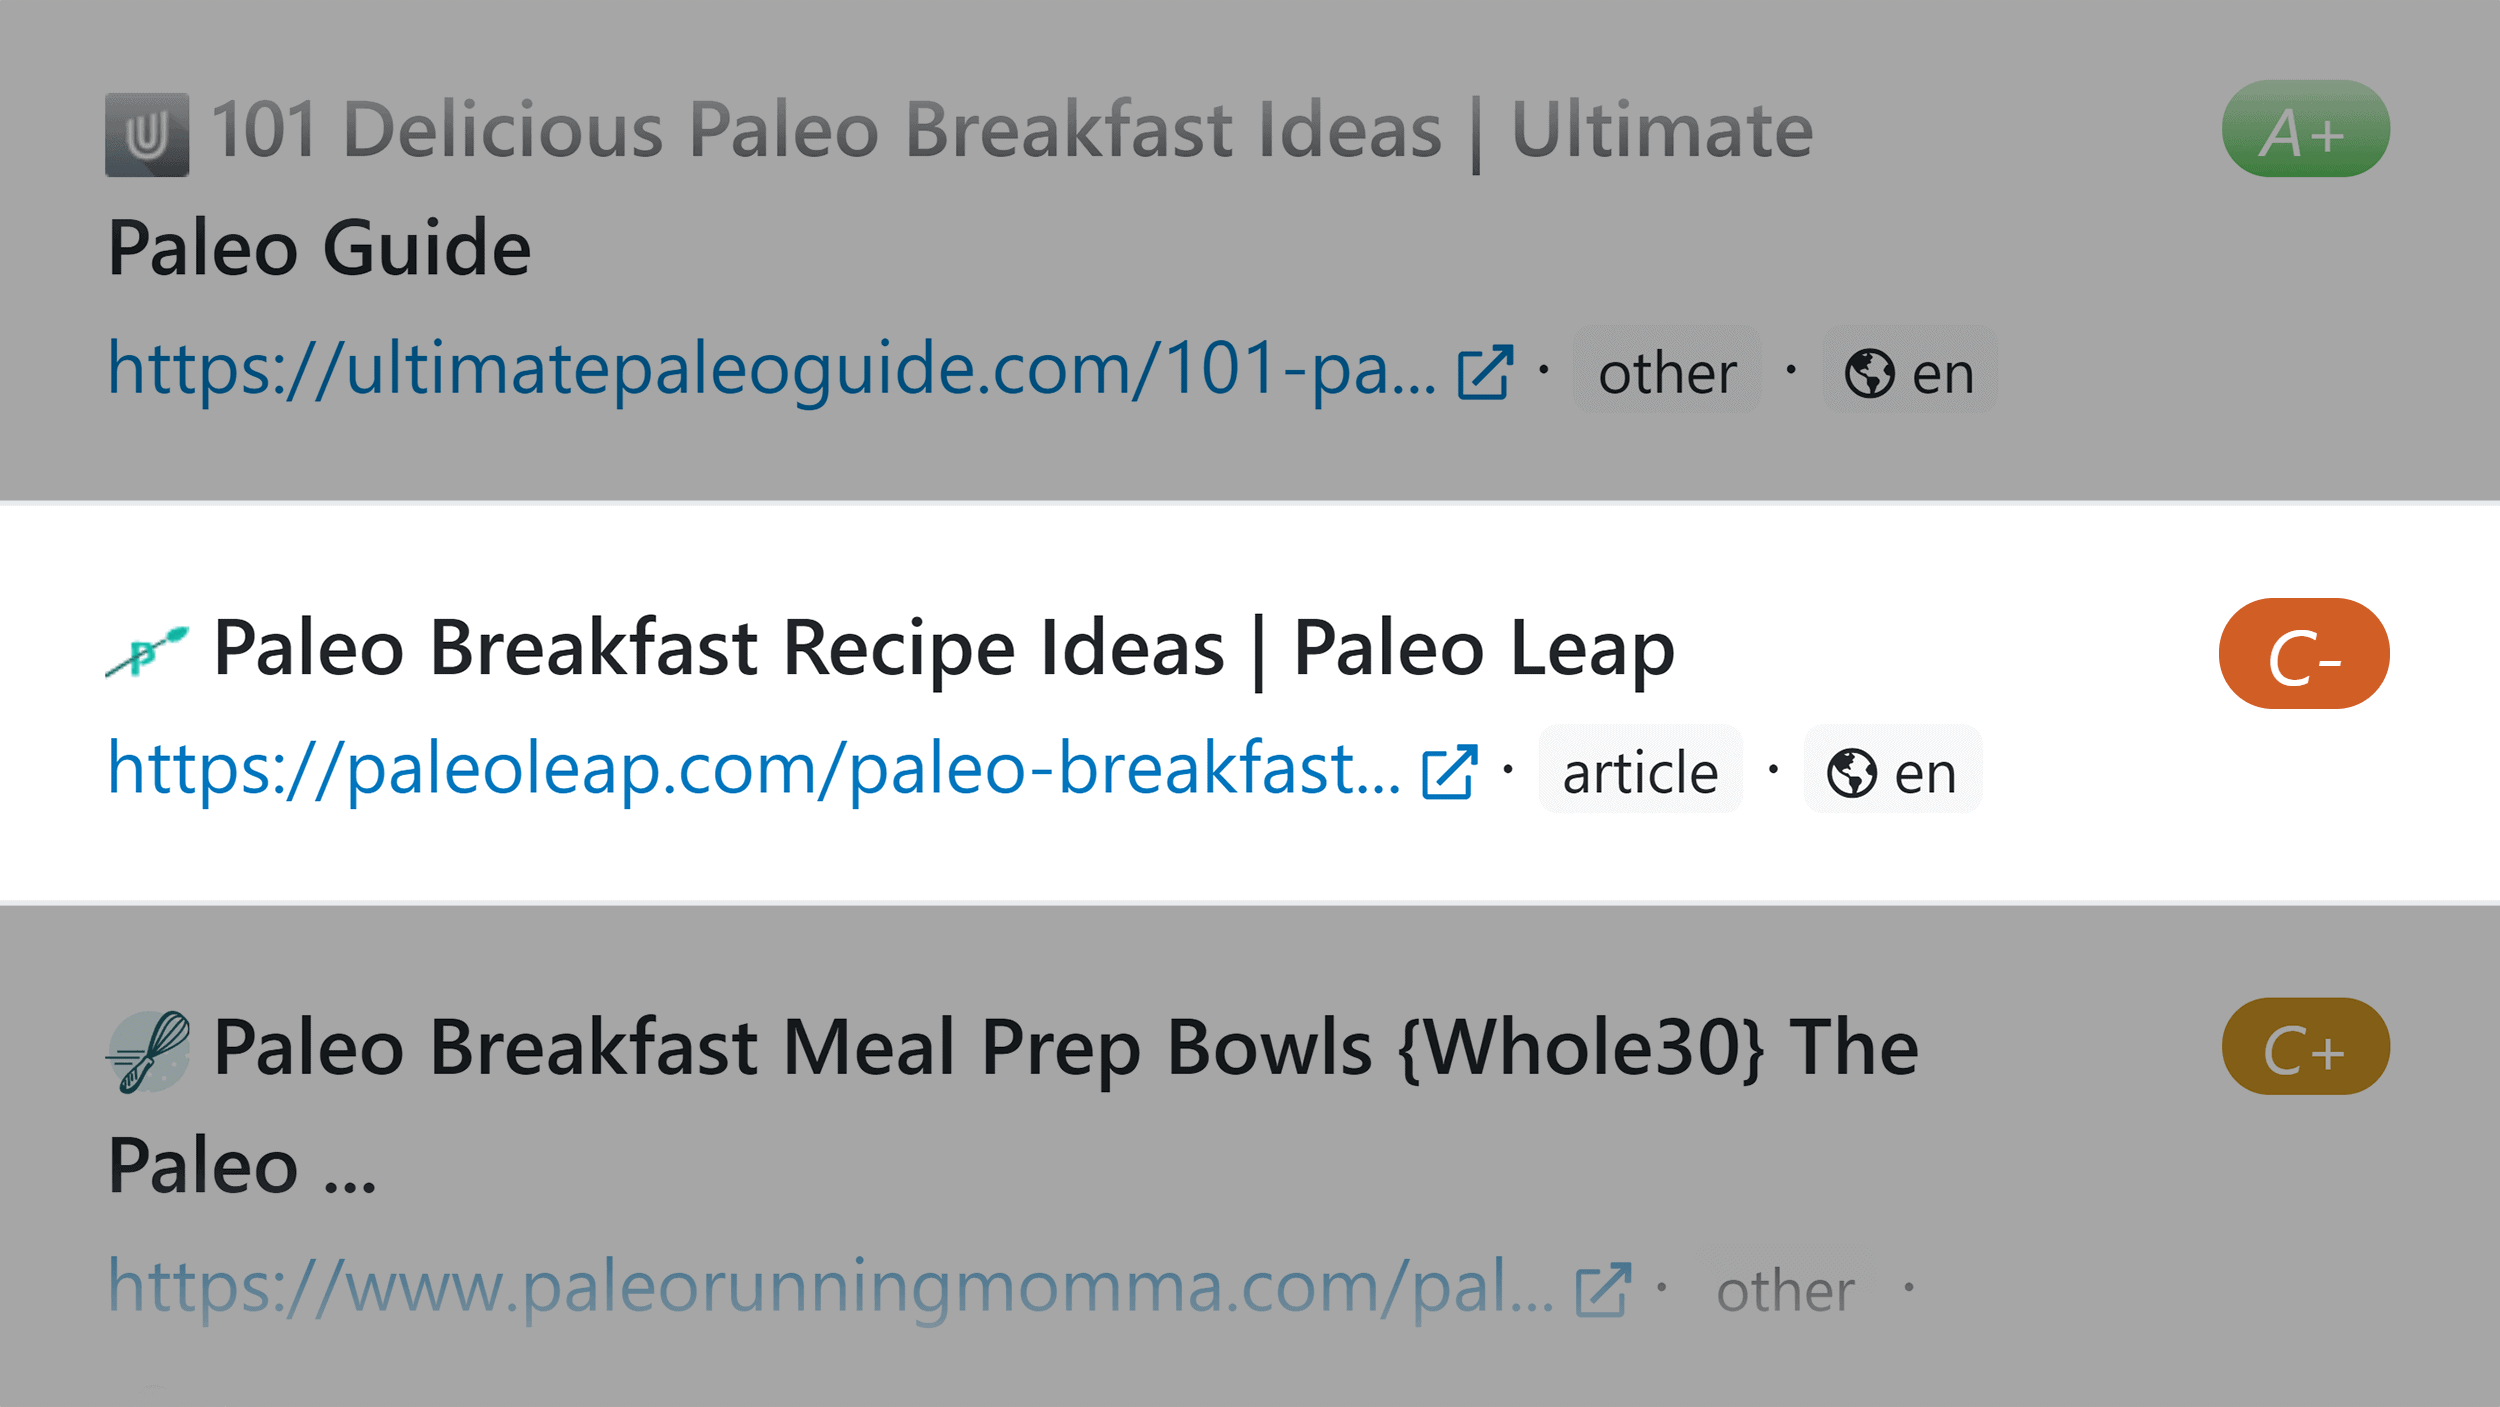 Paleo breakfast ideas – Content grade